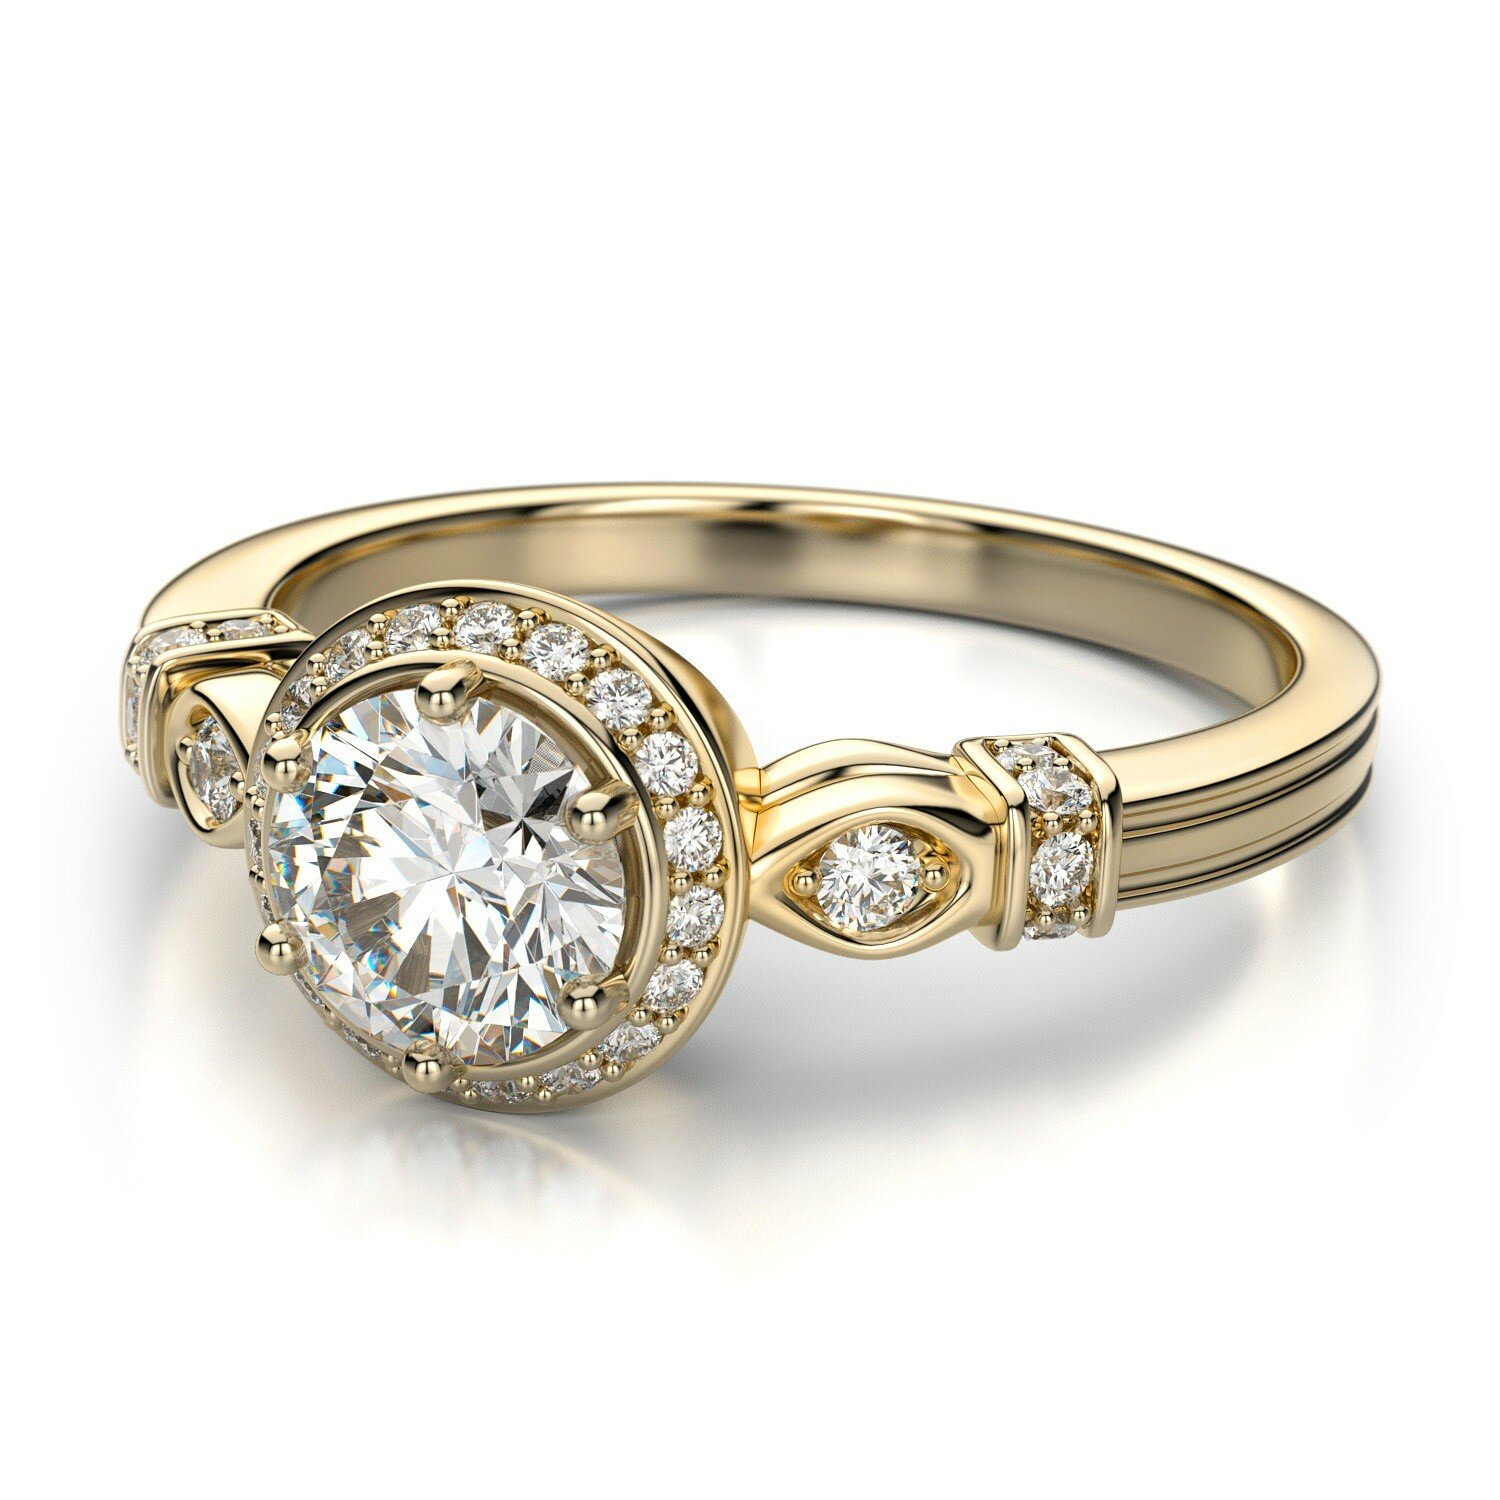 top 15 designs of vintage wedding rings mostbeautifulthings With vintage wedding rings